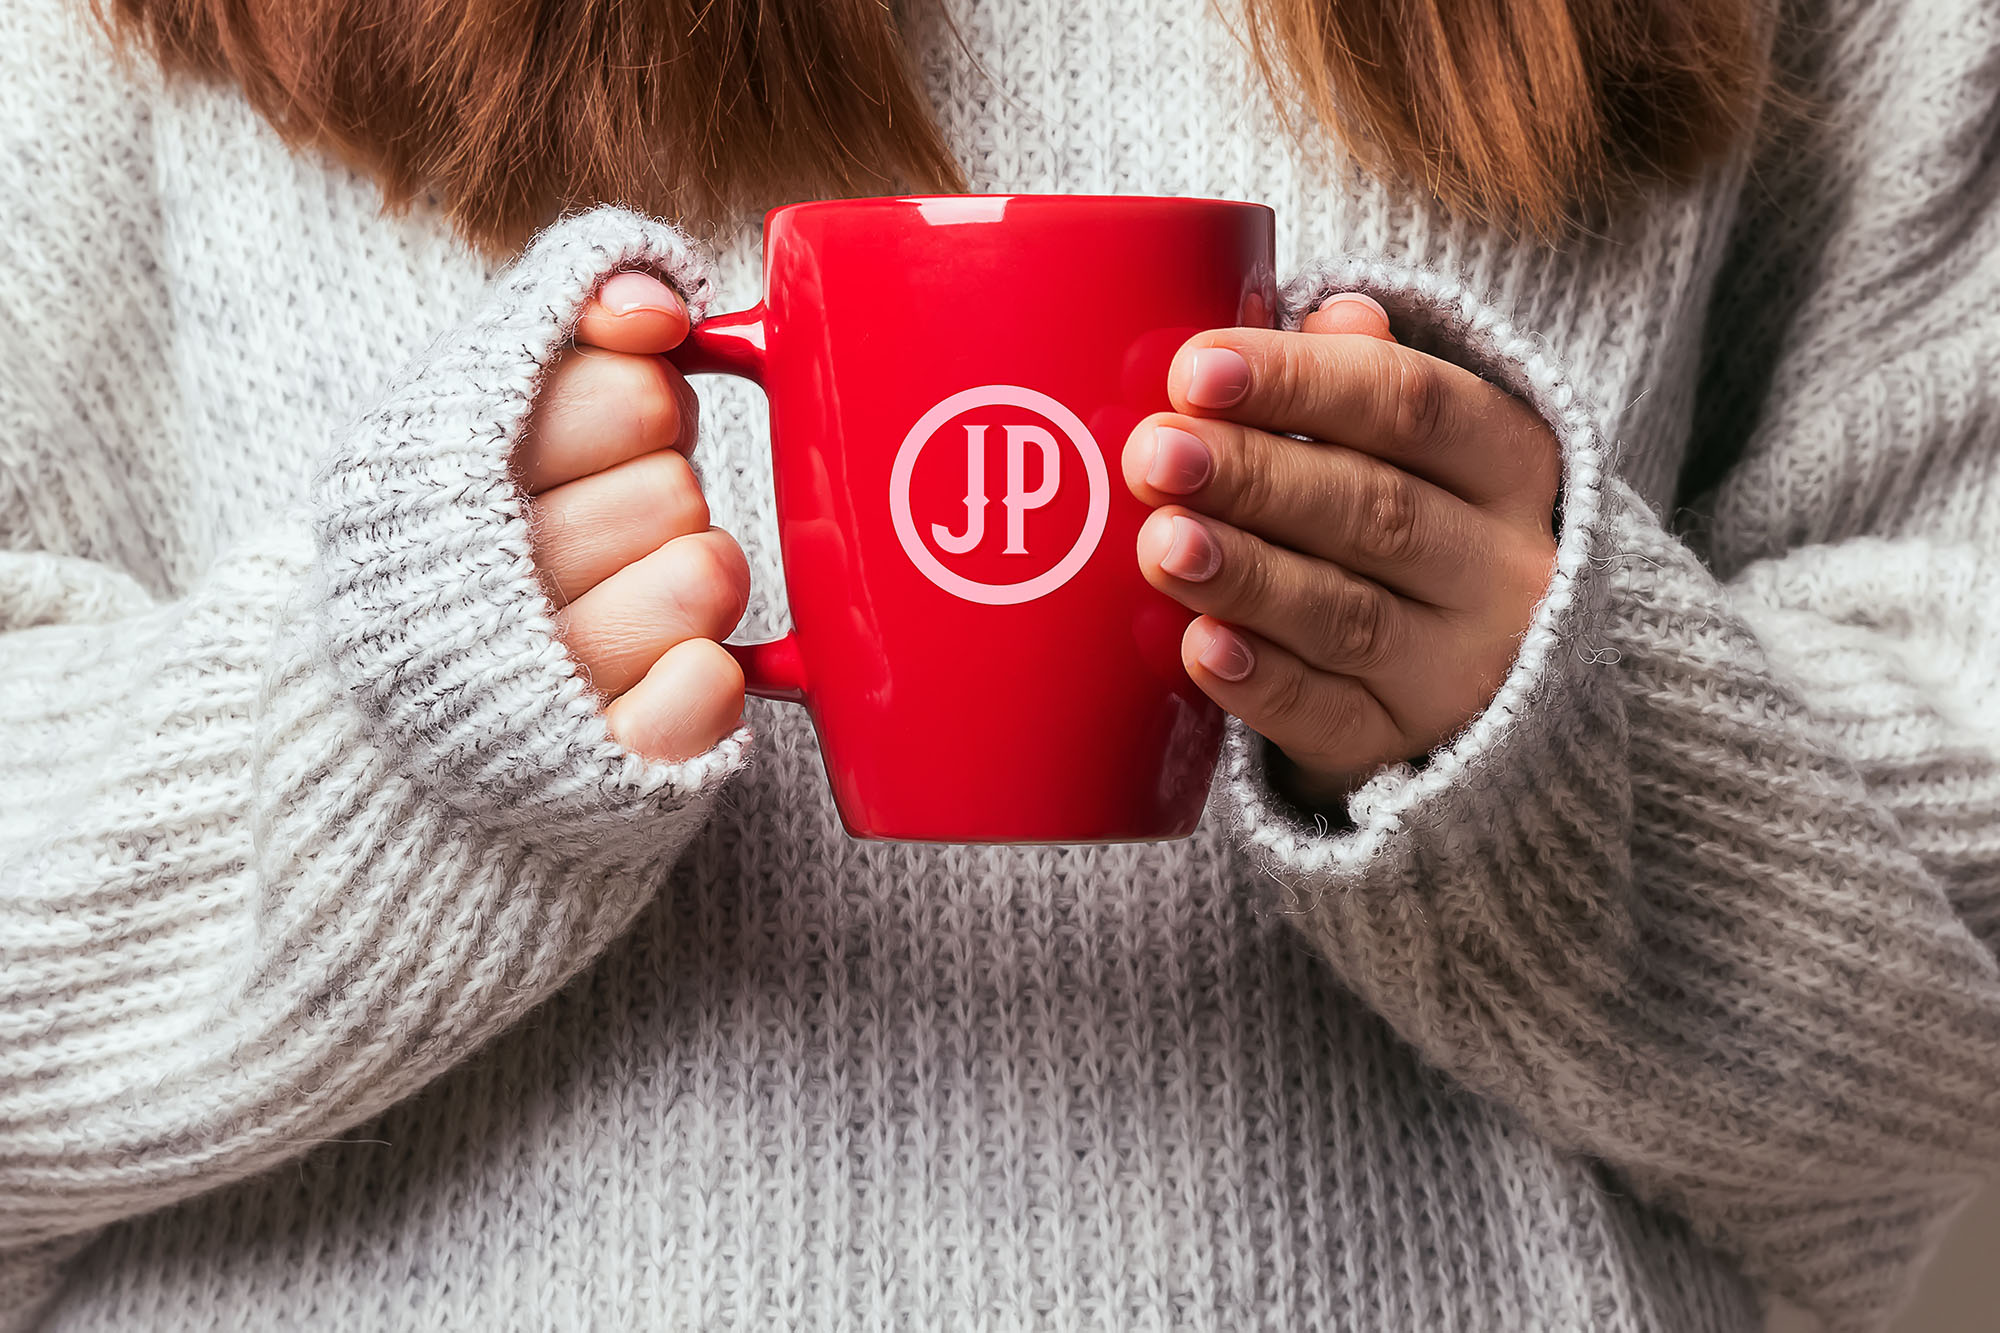 Picture of a woman's hands holding a red coffee mug